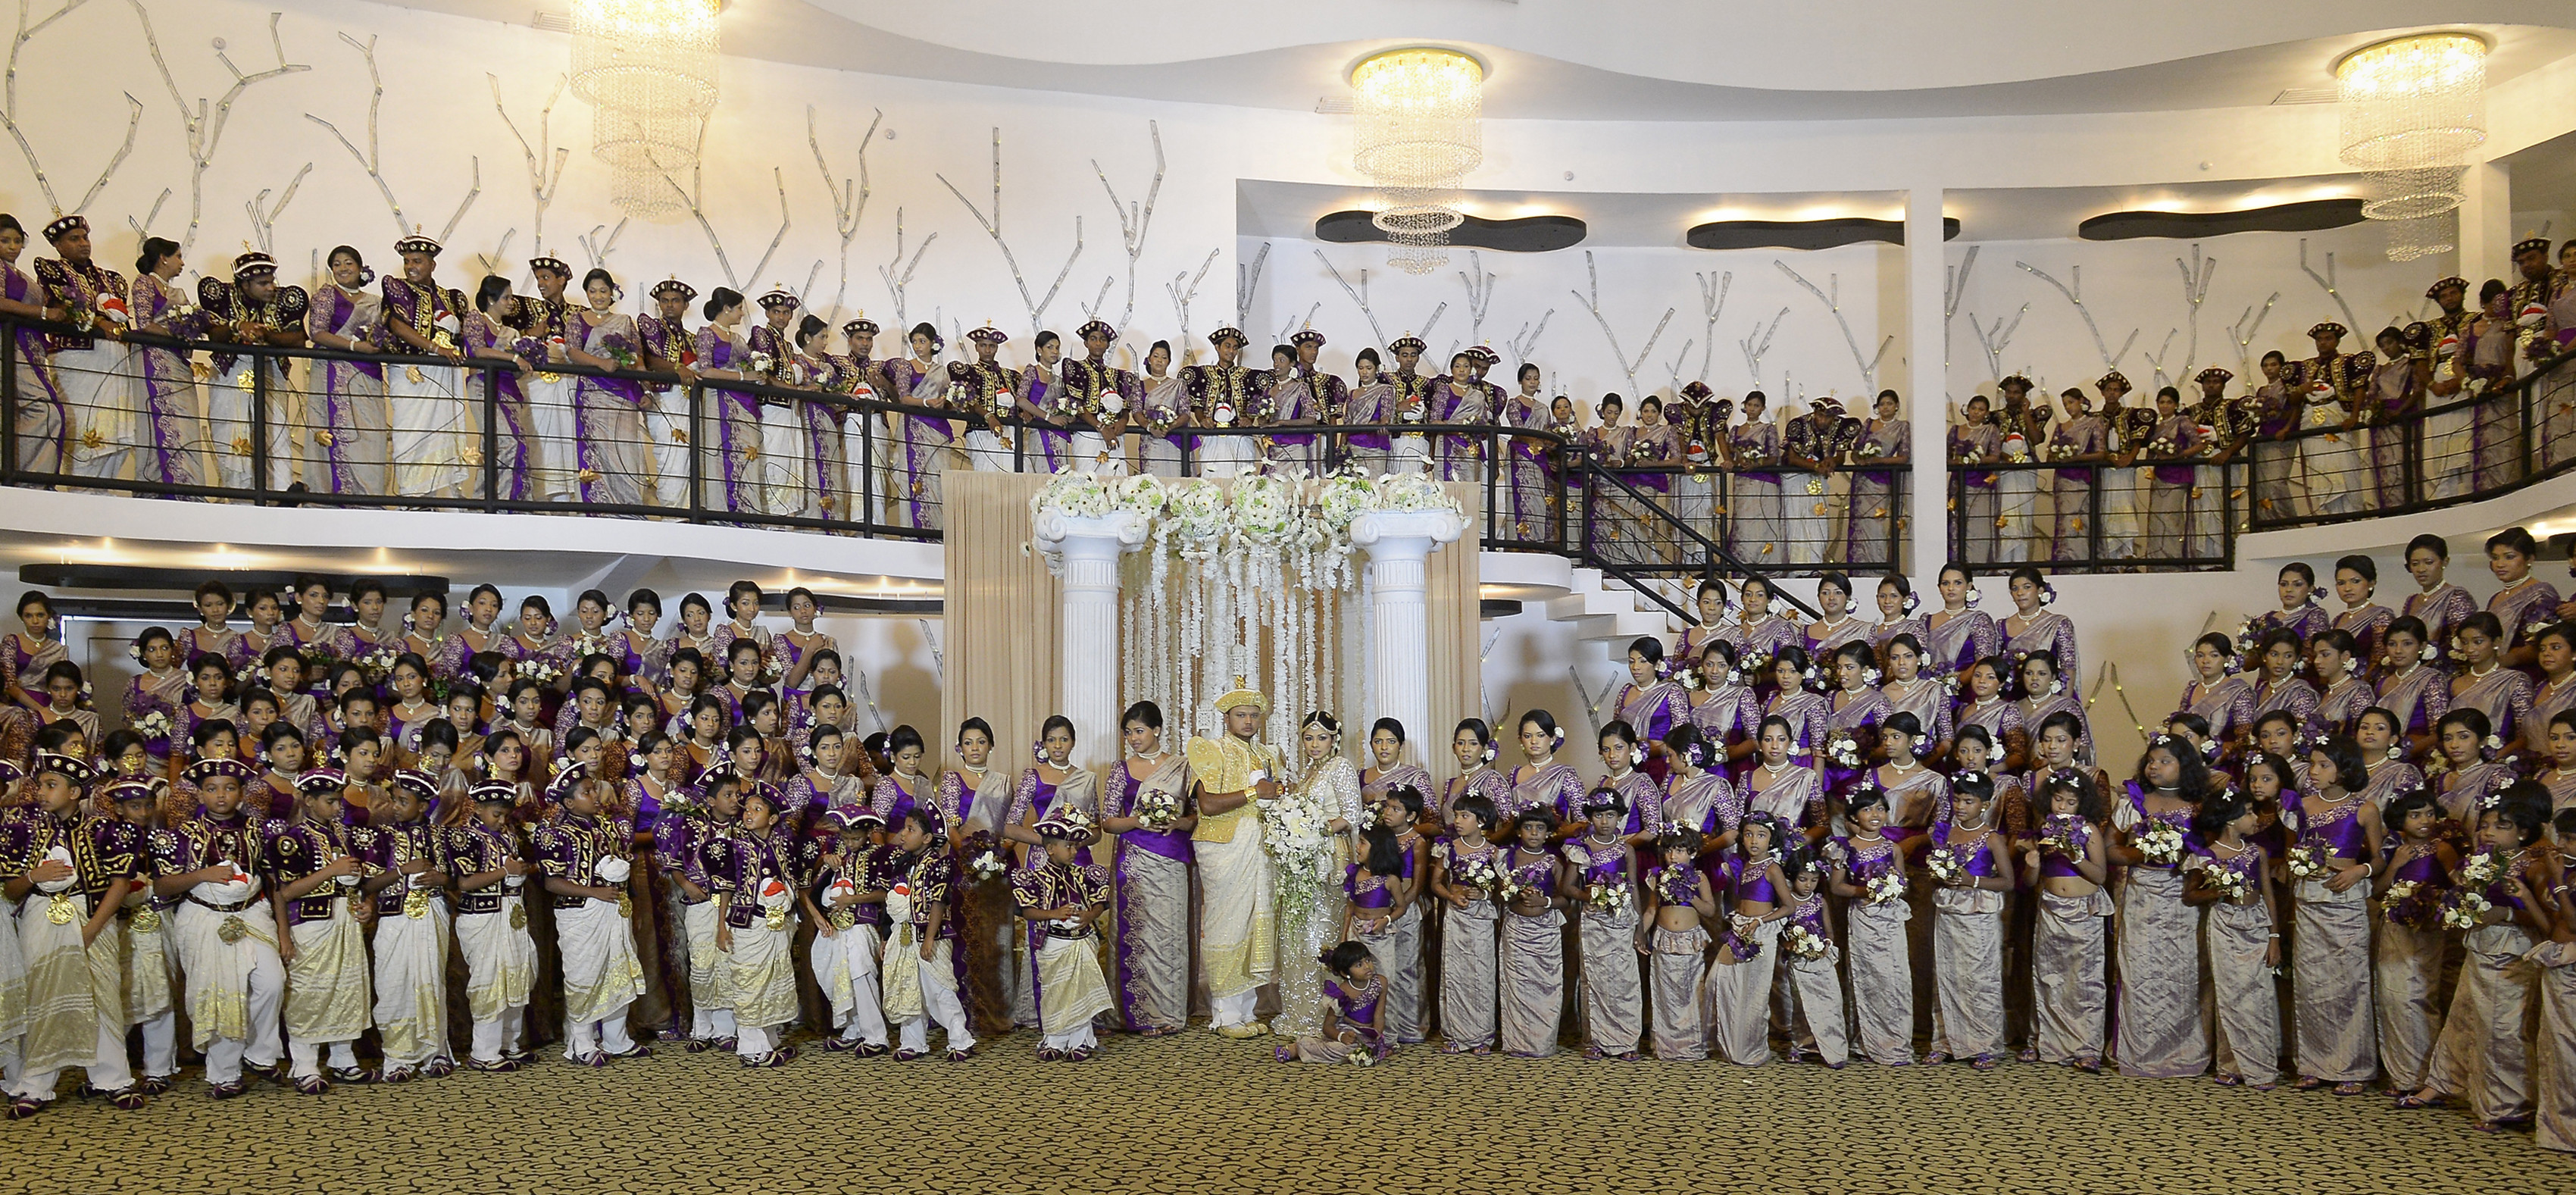 Couple Sets World Record With 126 Bridesmaids In Wedding